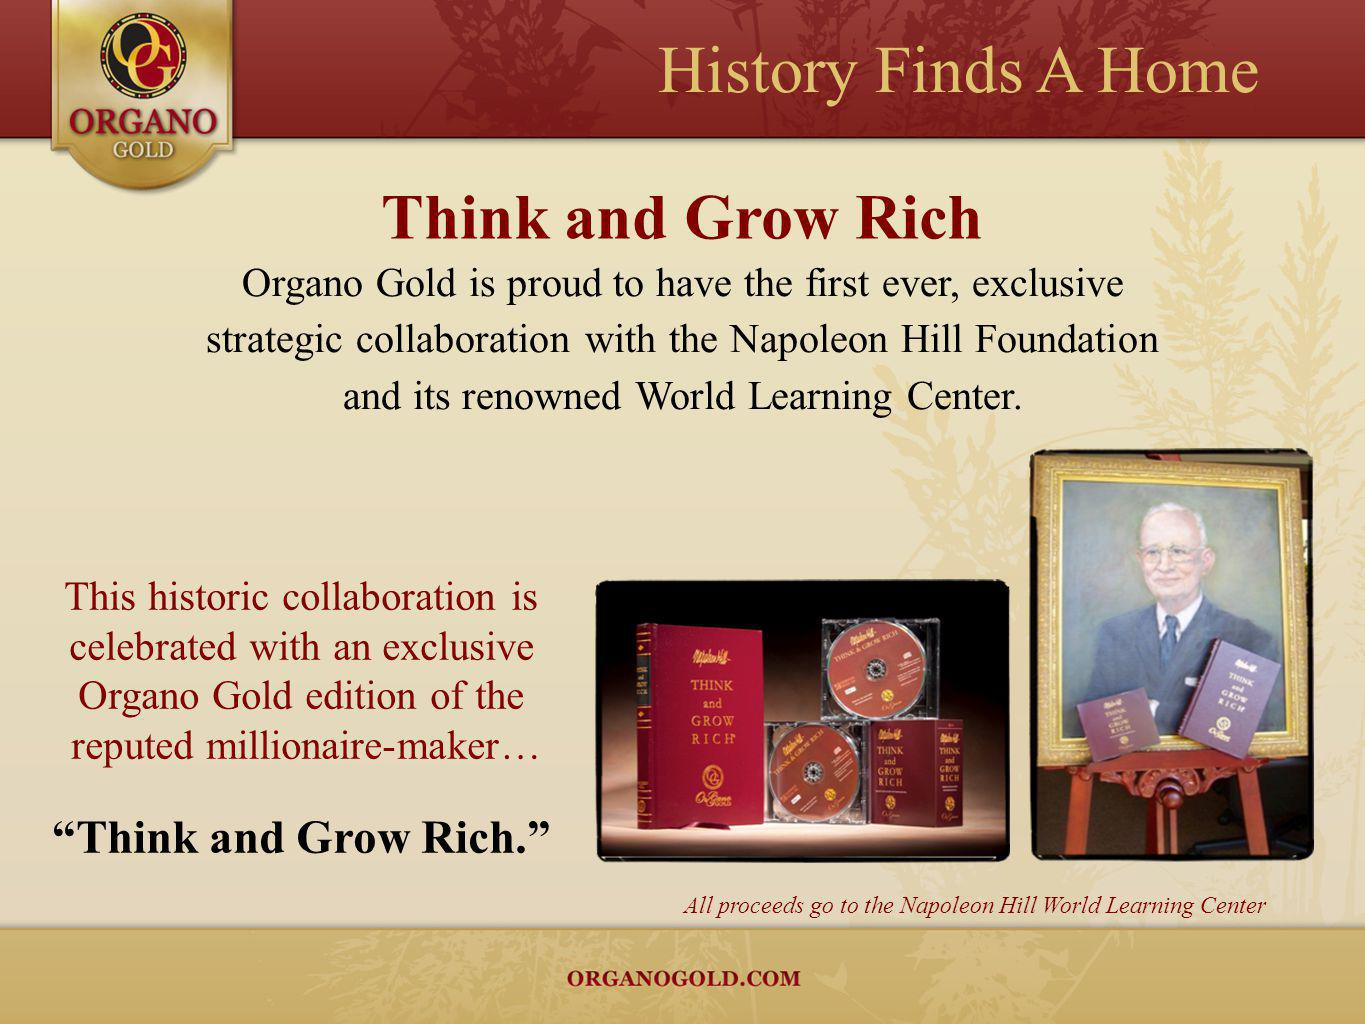 All proceeds go to the Napoleon Hill World Learning Center Organo Gold is proud to have the first ever, exclusive strategic collaboration with the Nap